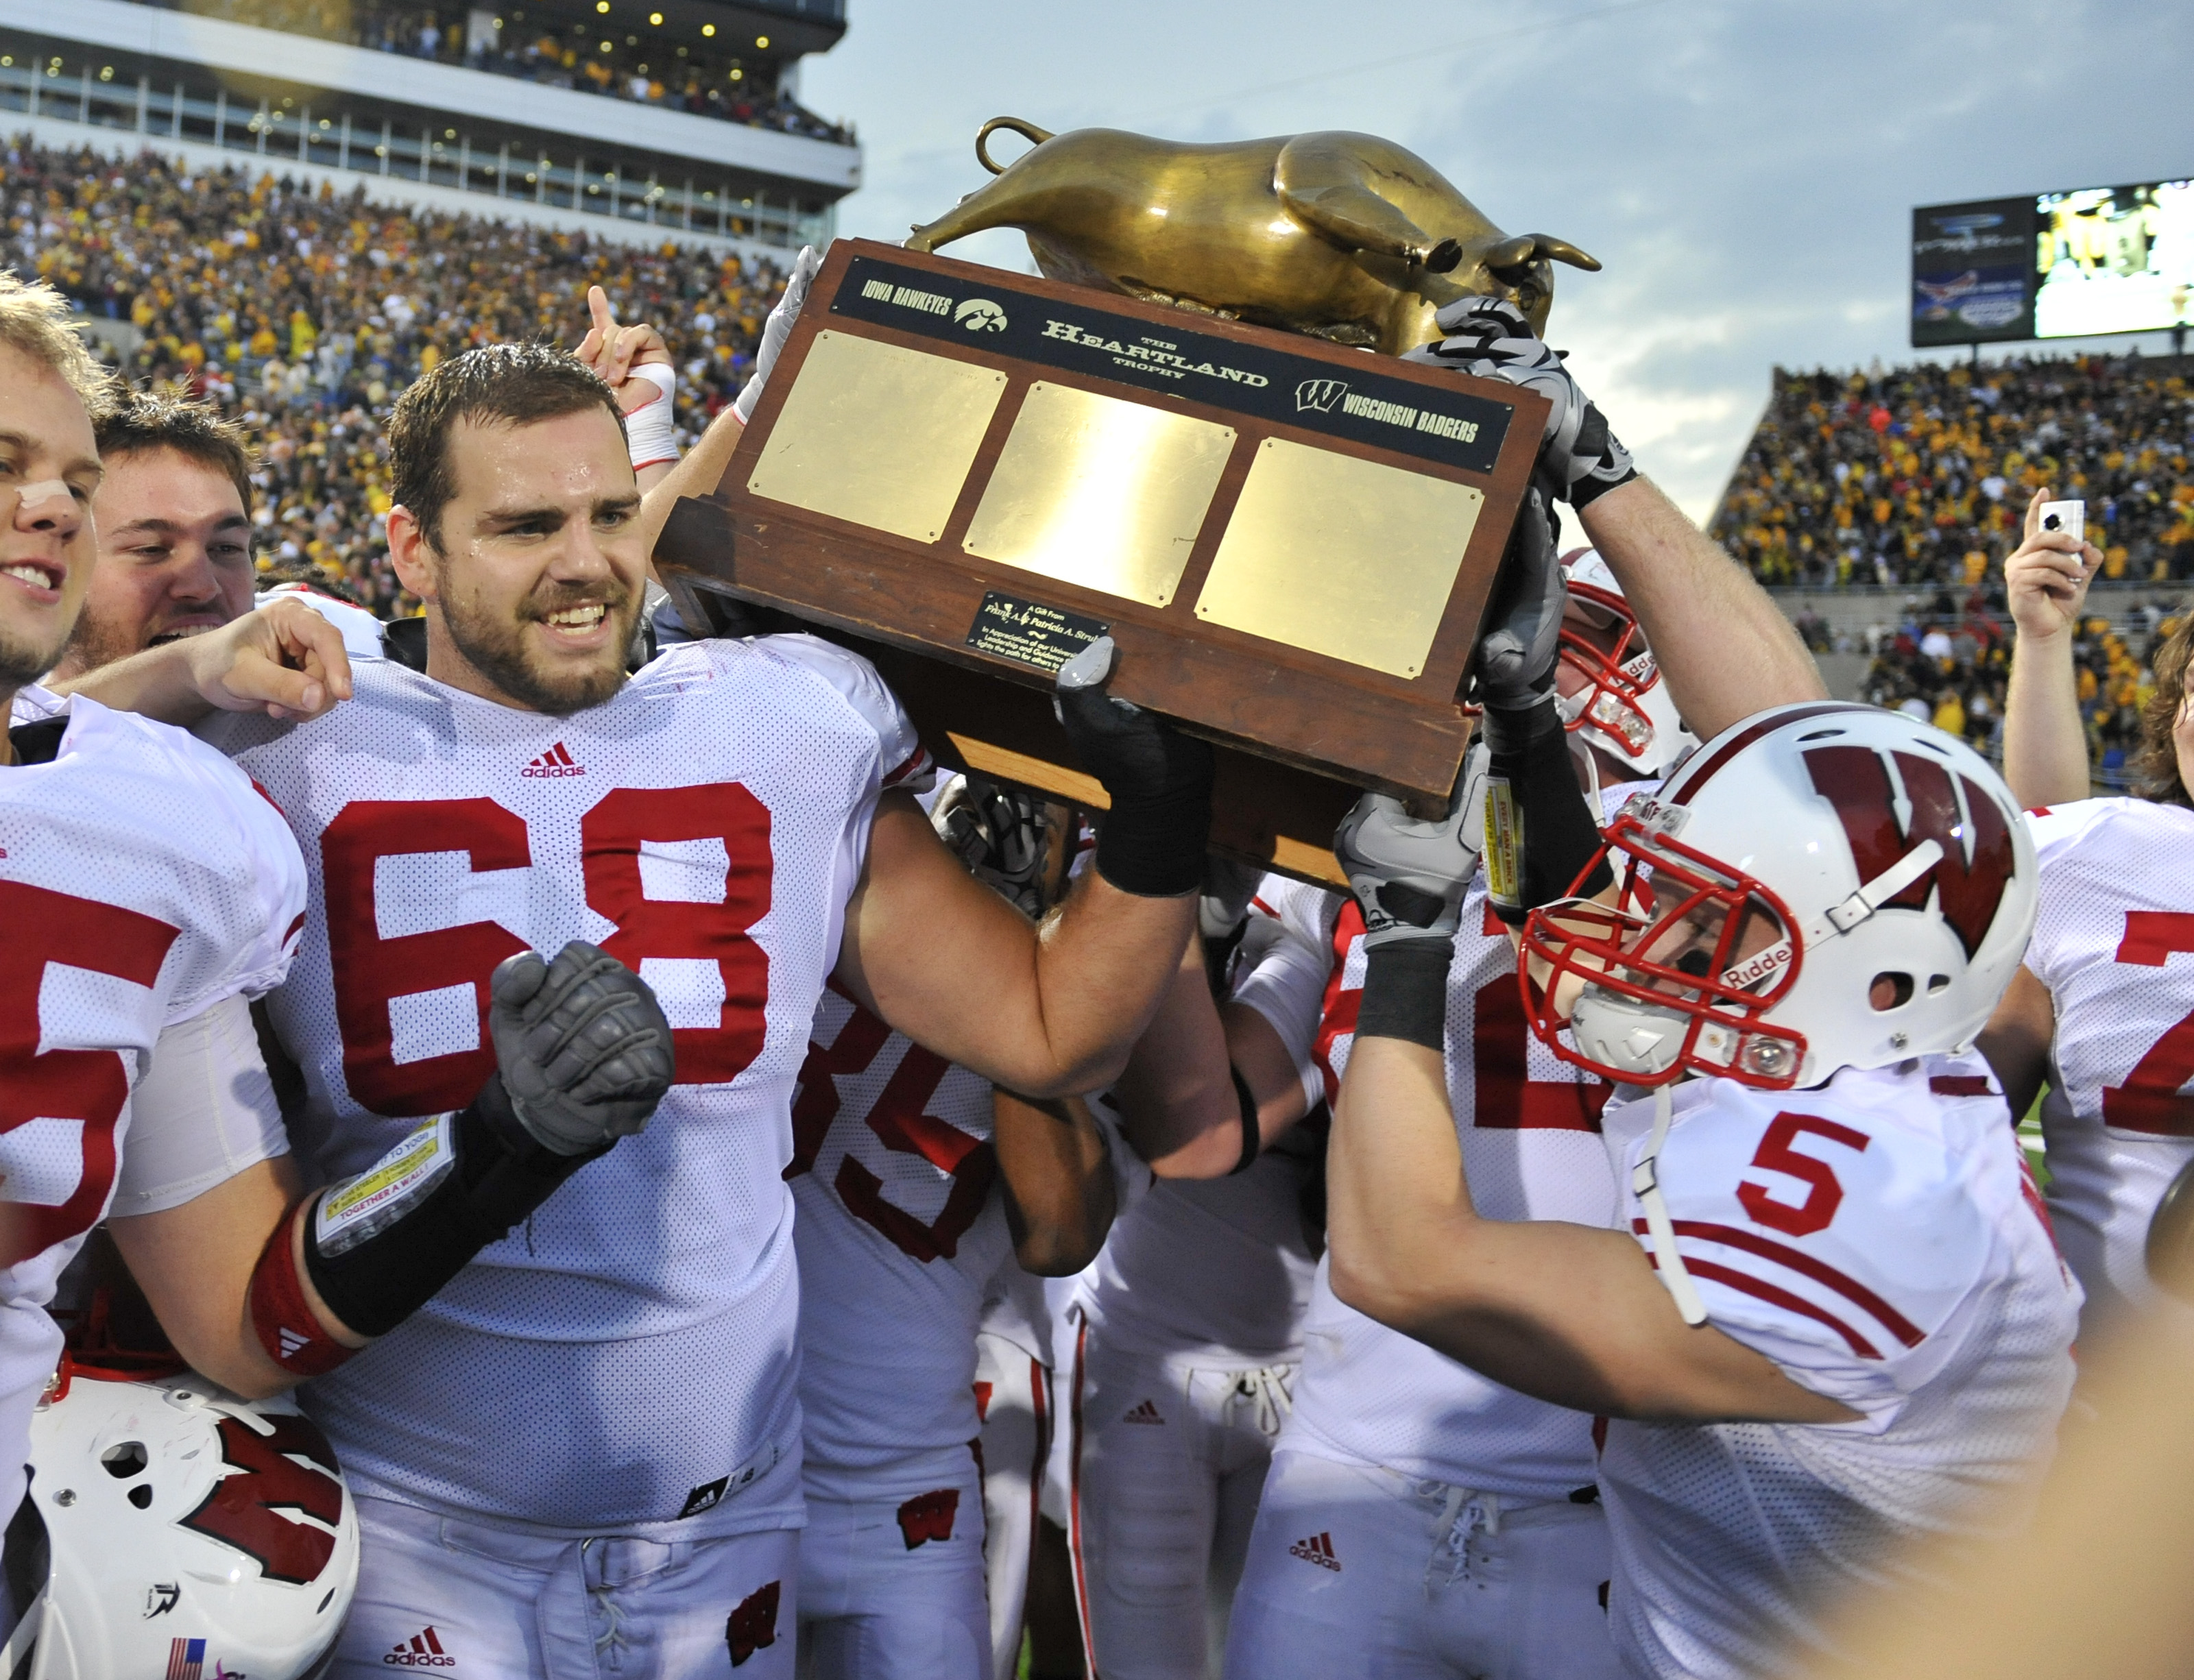 Heartland Trophy Coming Back to Madison as Badgers Take Down Iowa 17-9